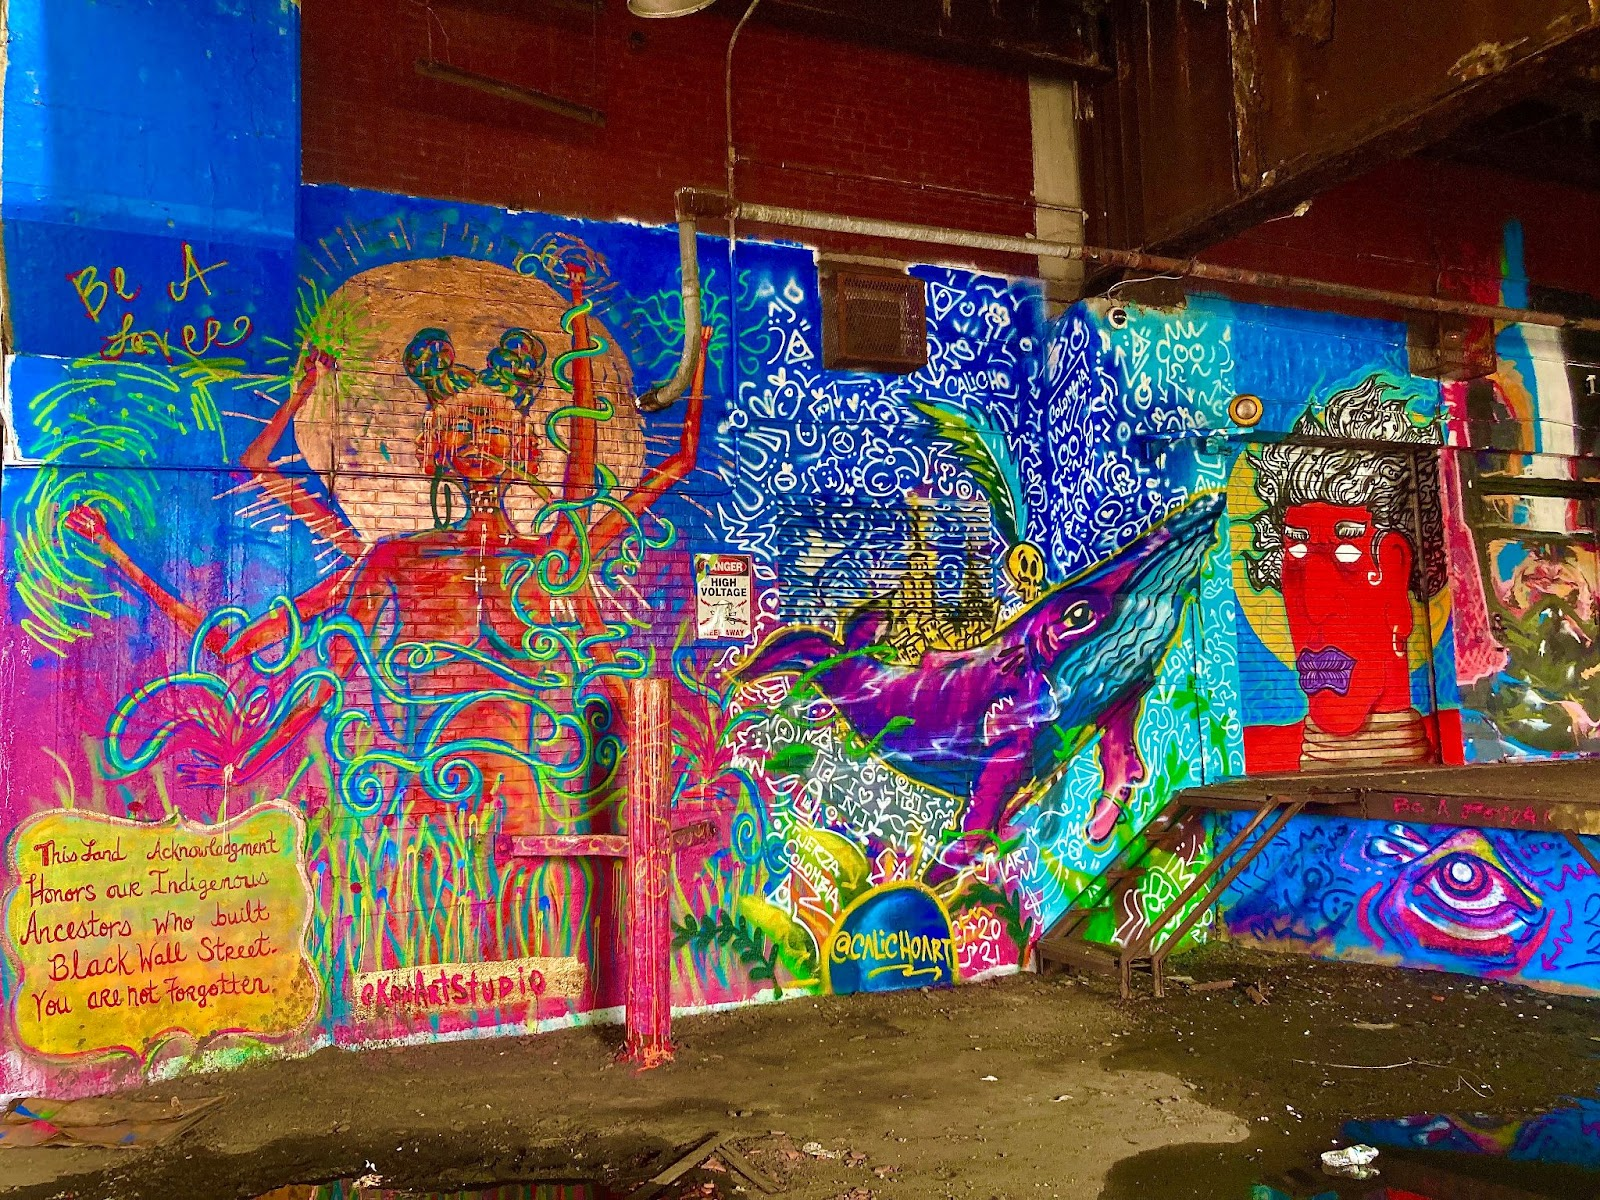 Artwork by Konstance Patton and Calicho Arevalo. Near Monmouth St. & 10th St. Photo by Vittoria Benzine.